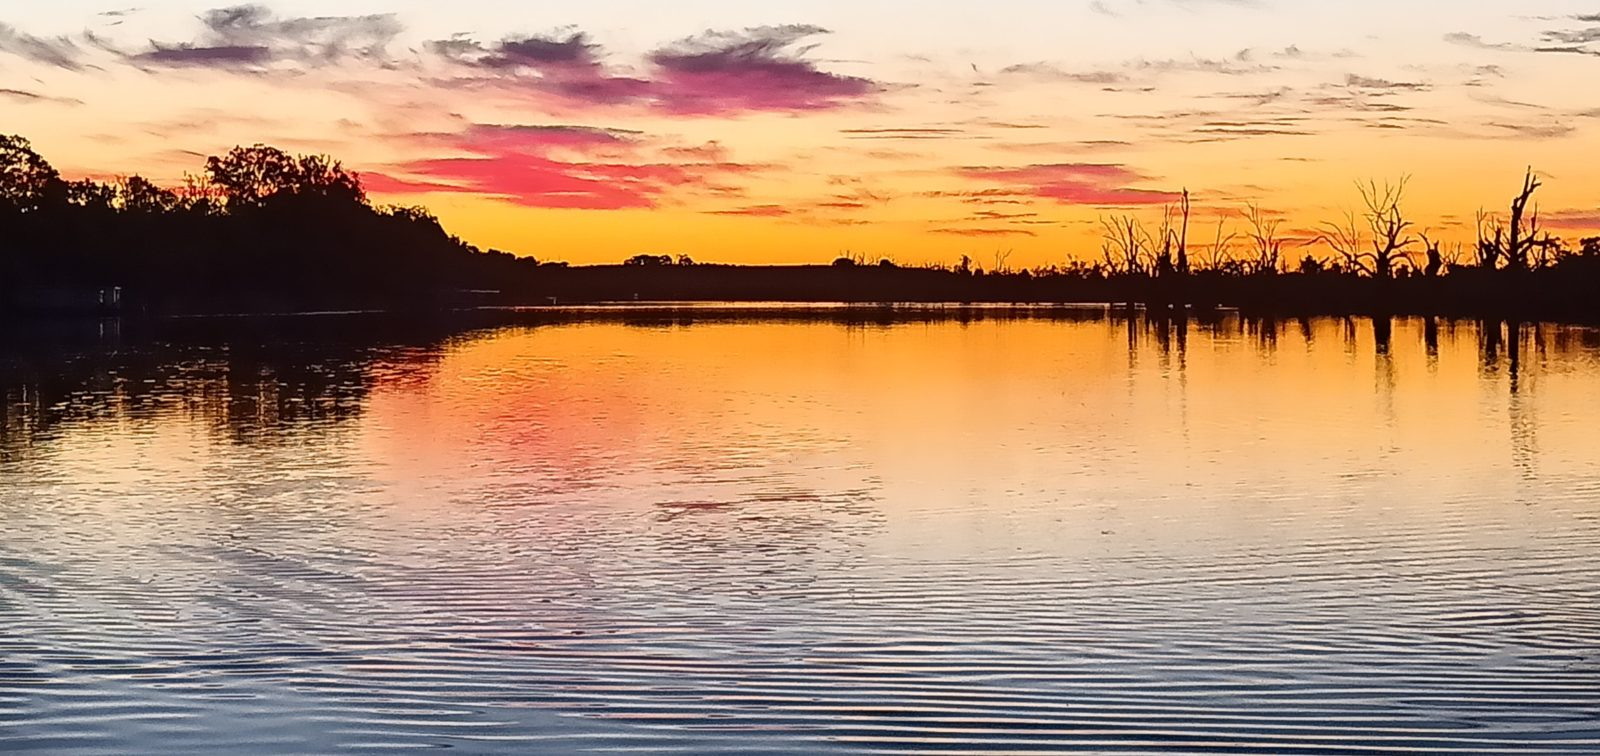 Vivid sunset colours over a tranquil river scene as dusk falls.